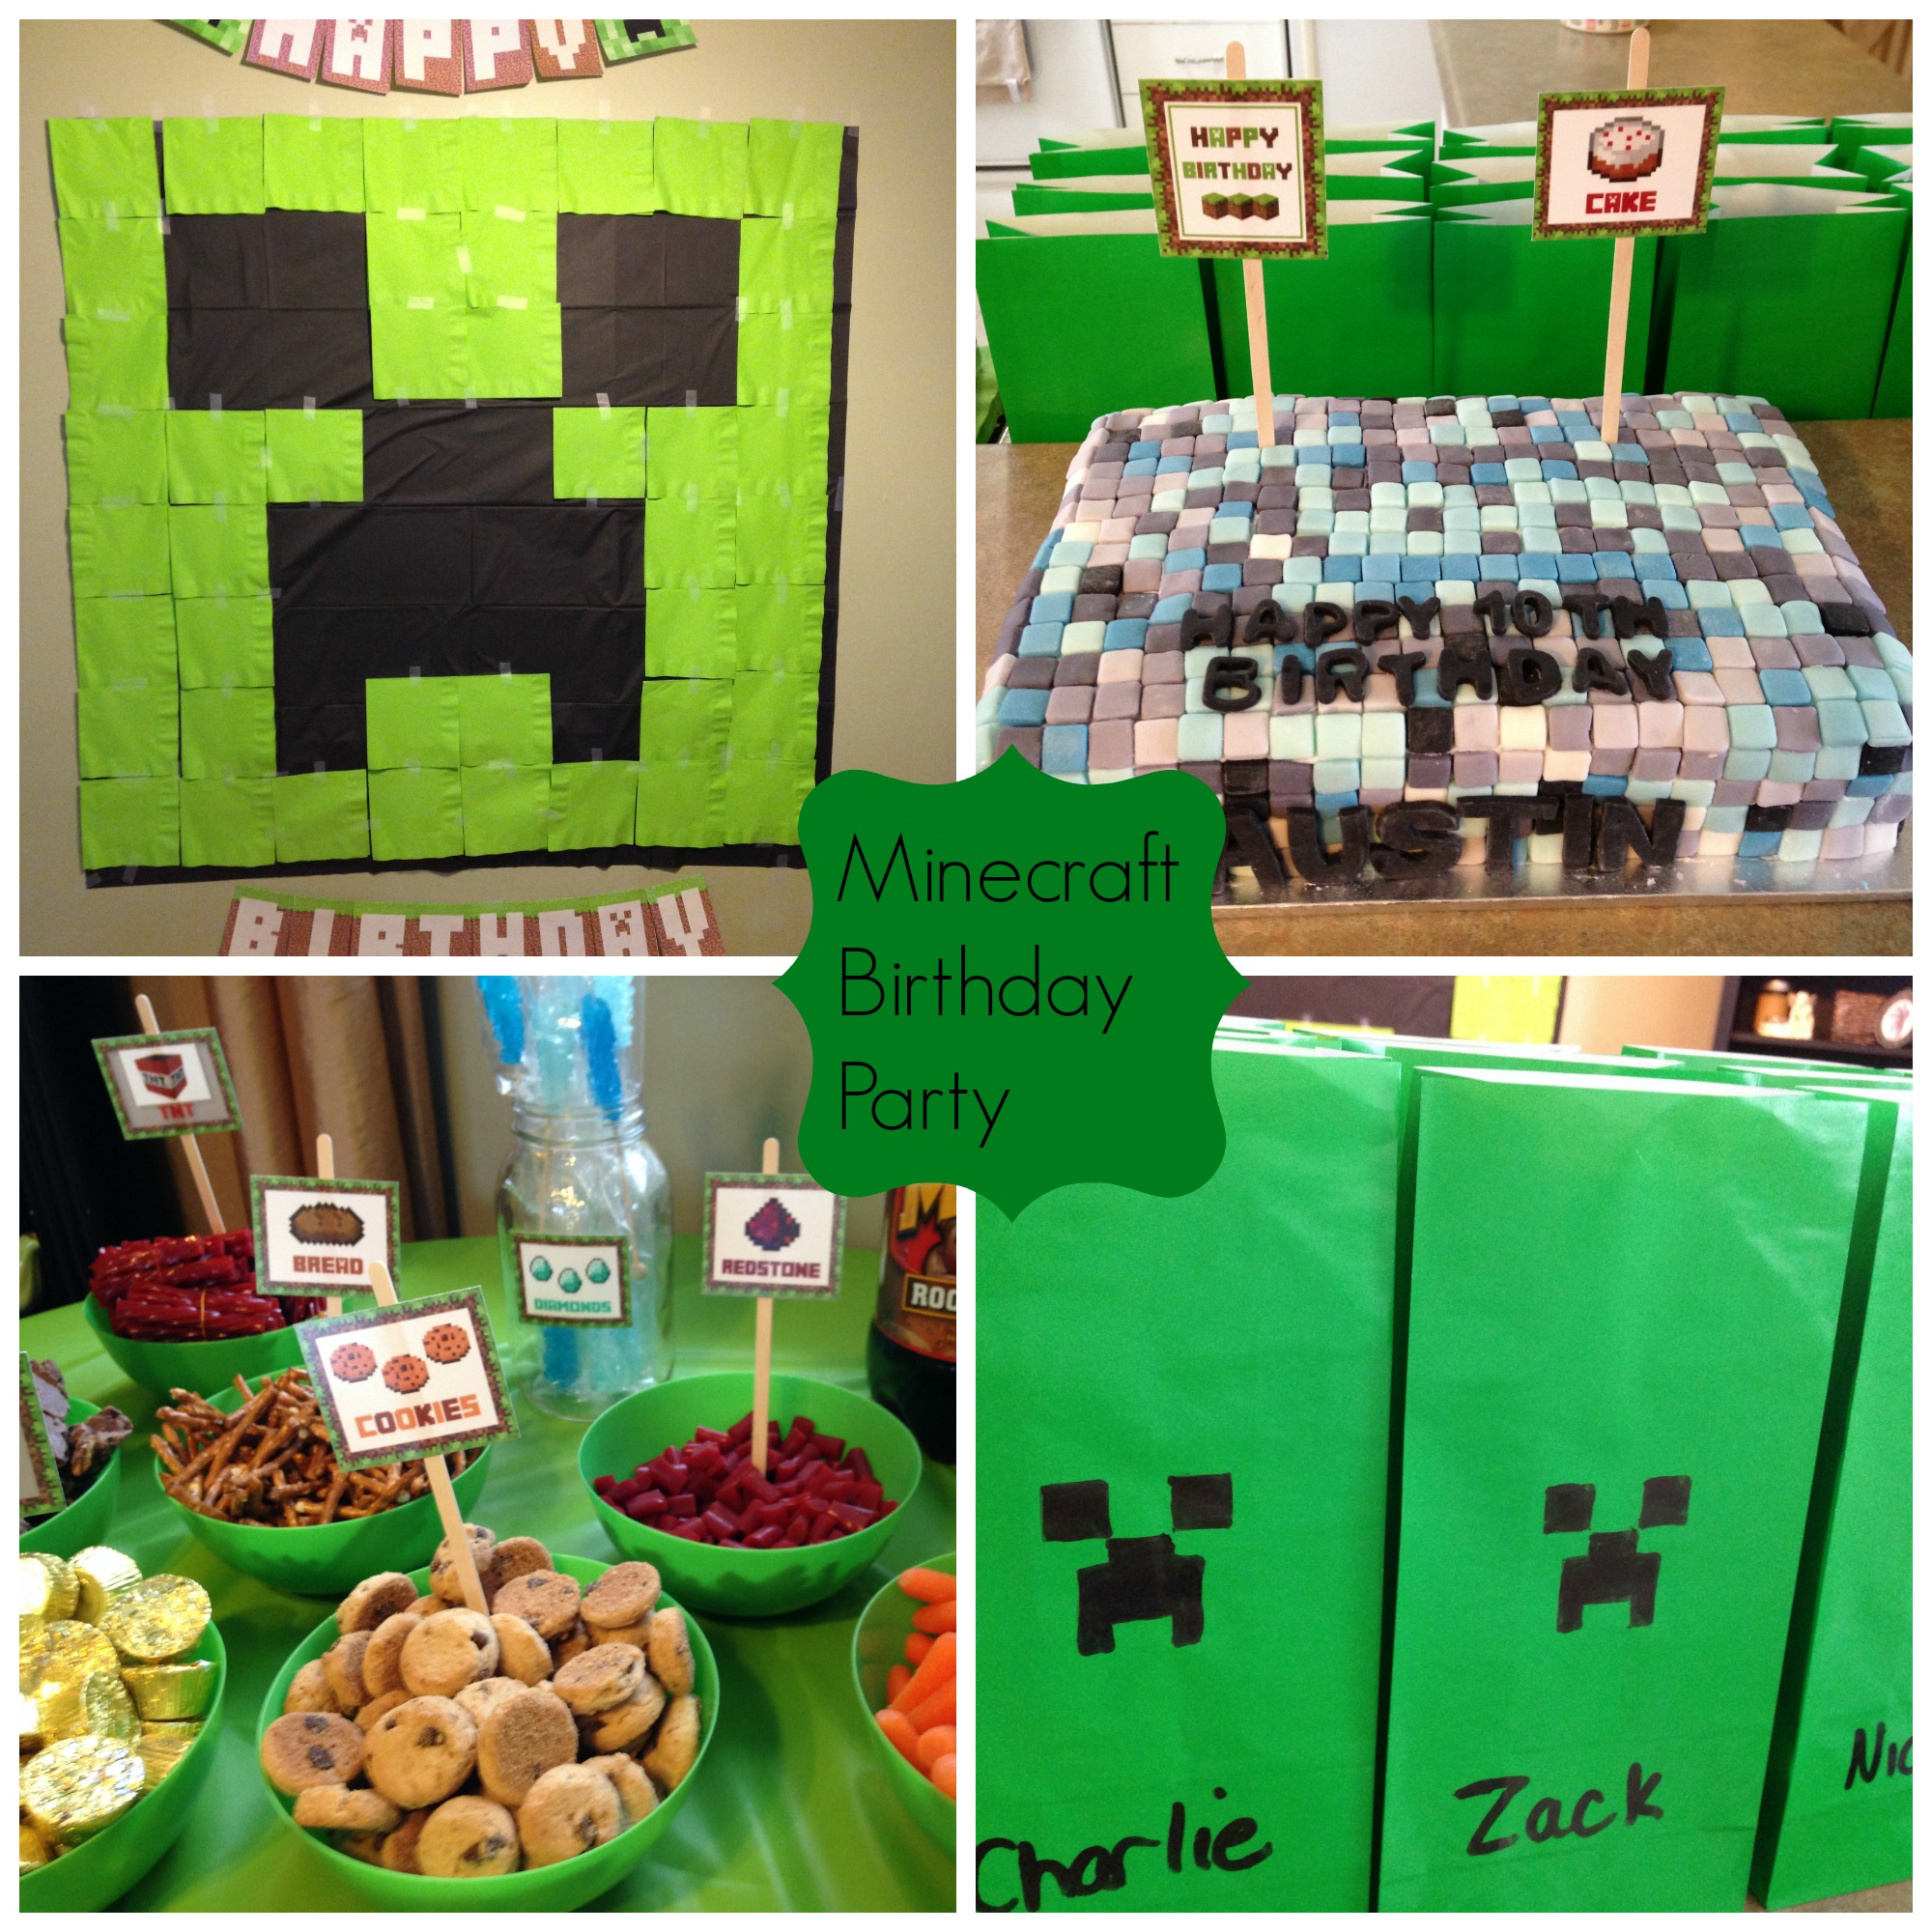 Minecraft Party Invitations is great invitation layout